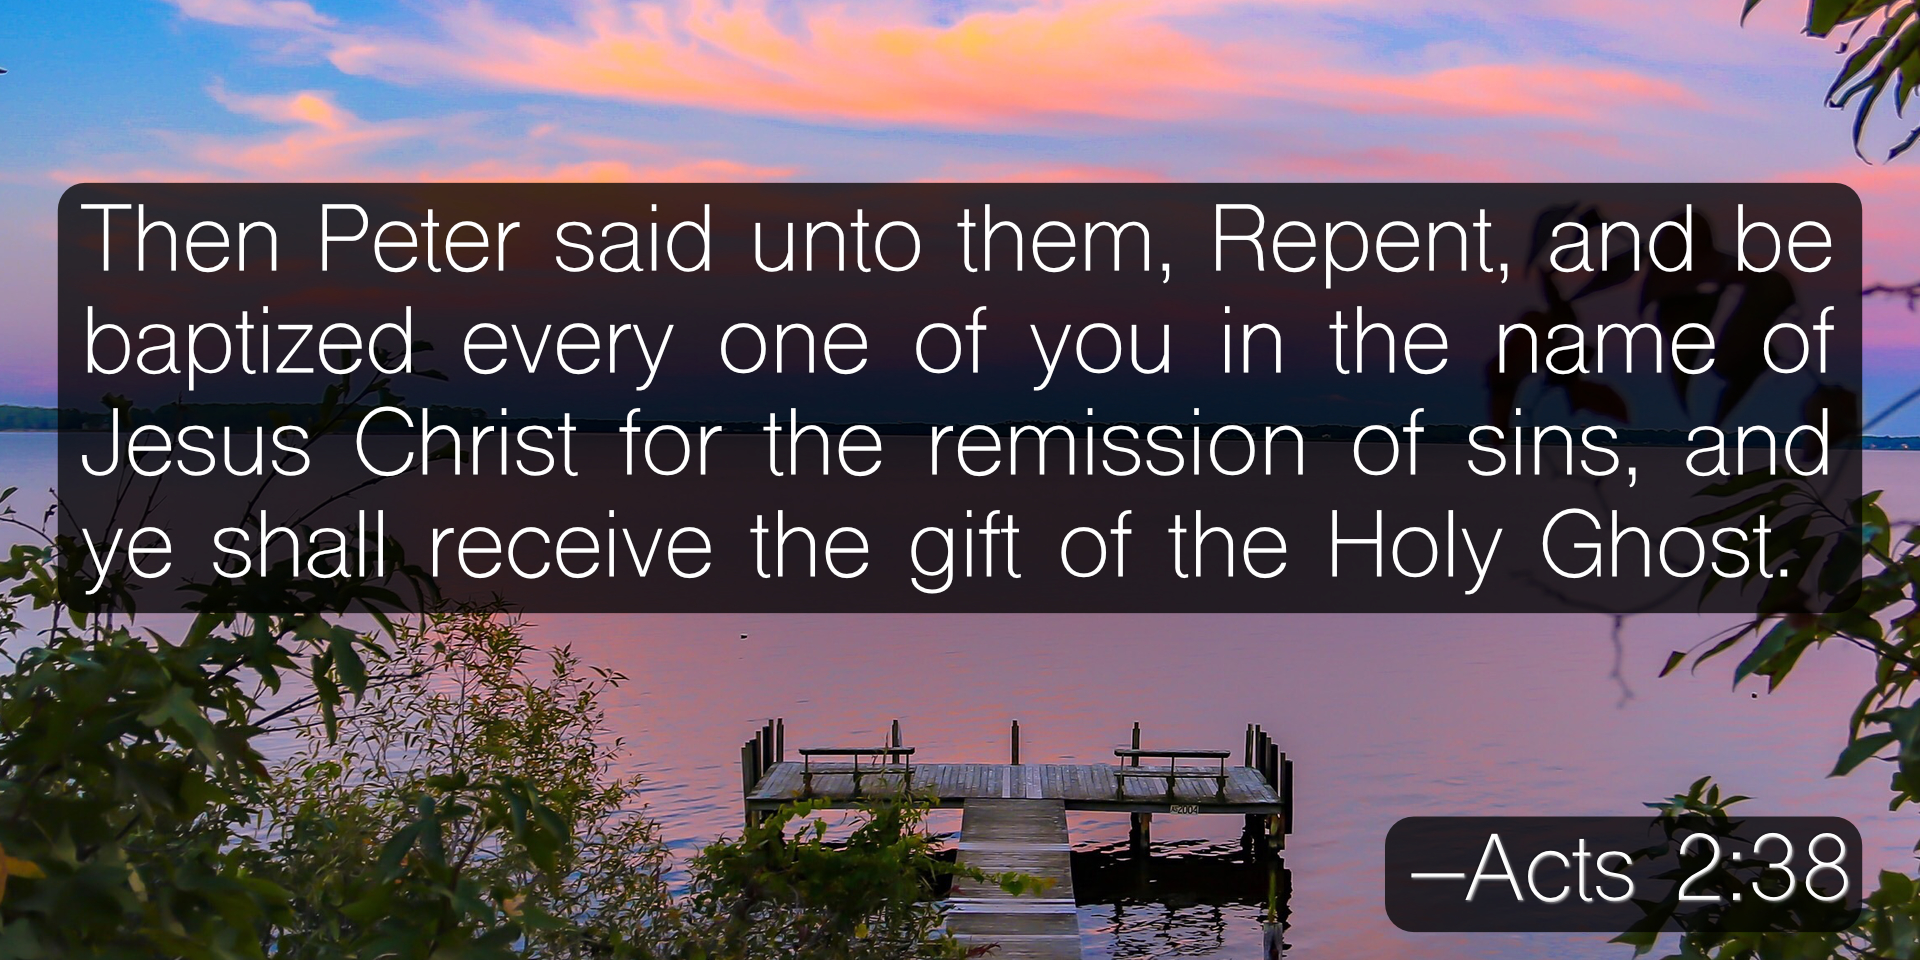 Then Peter said unto them, Repent, and be baptized every one of you in the name of Jesus Christ for the remission of sins, and ye shall receive the gift of the Holy Ghost. –Acts 2:38